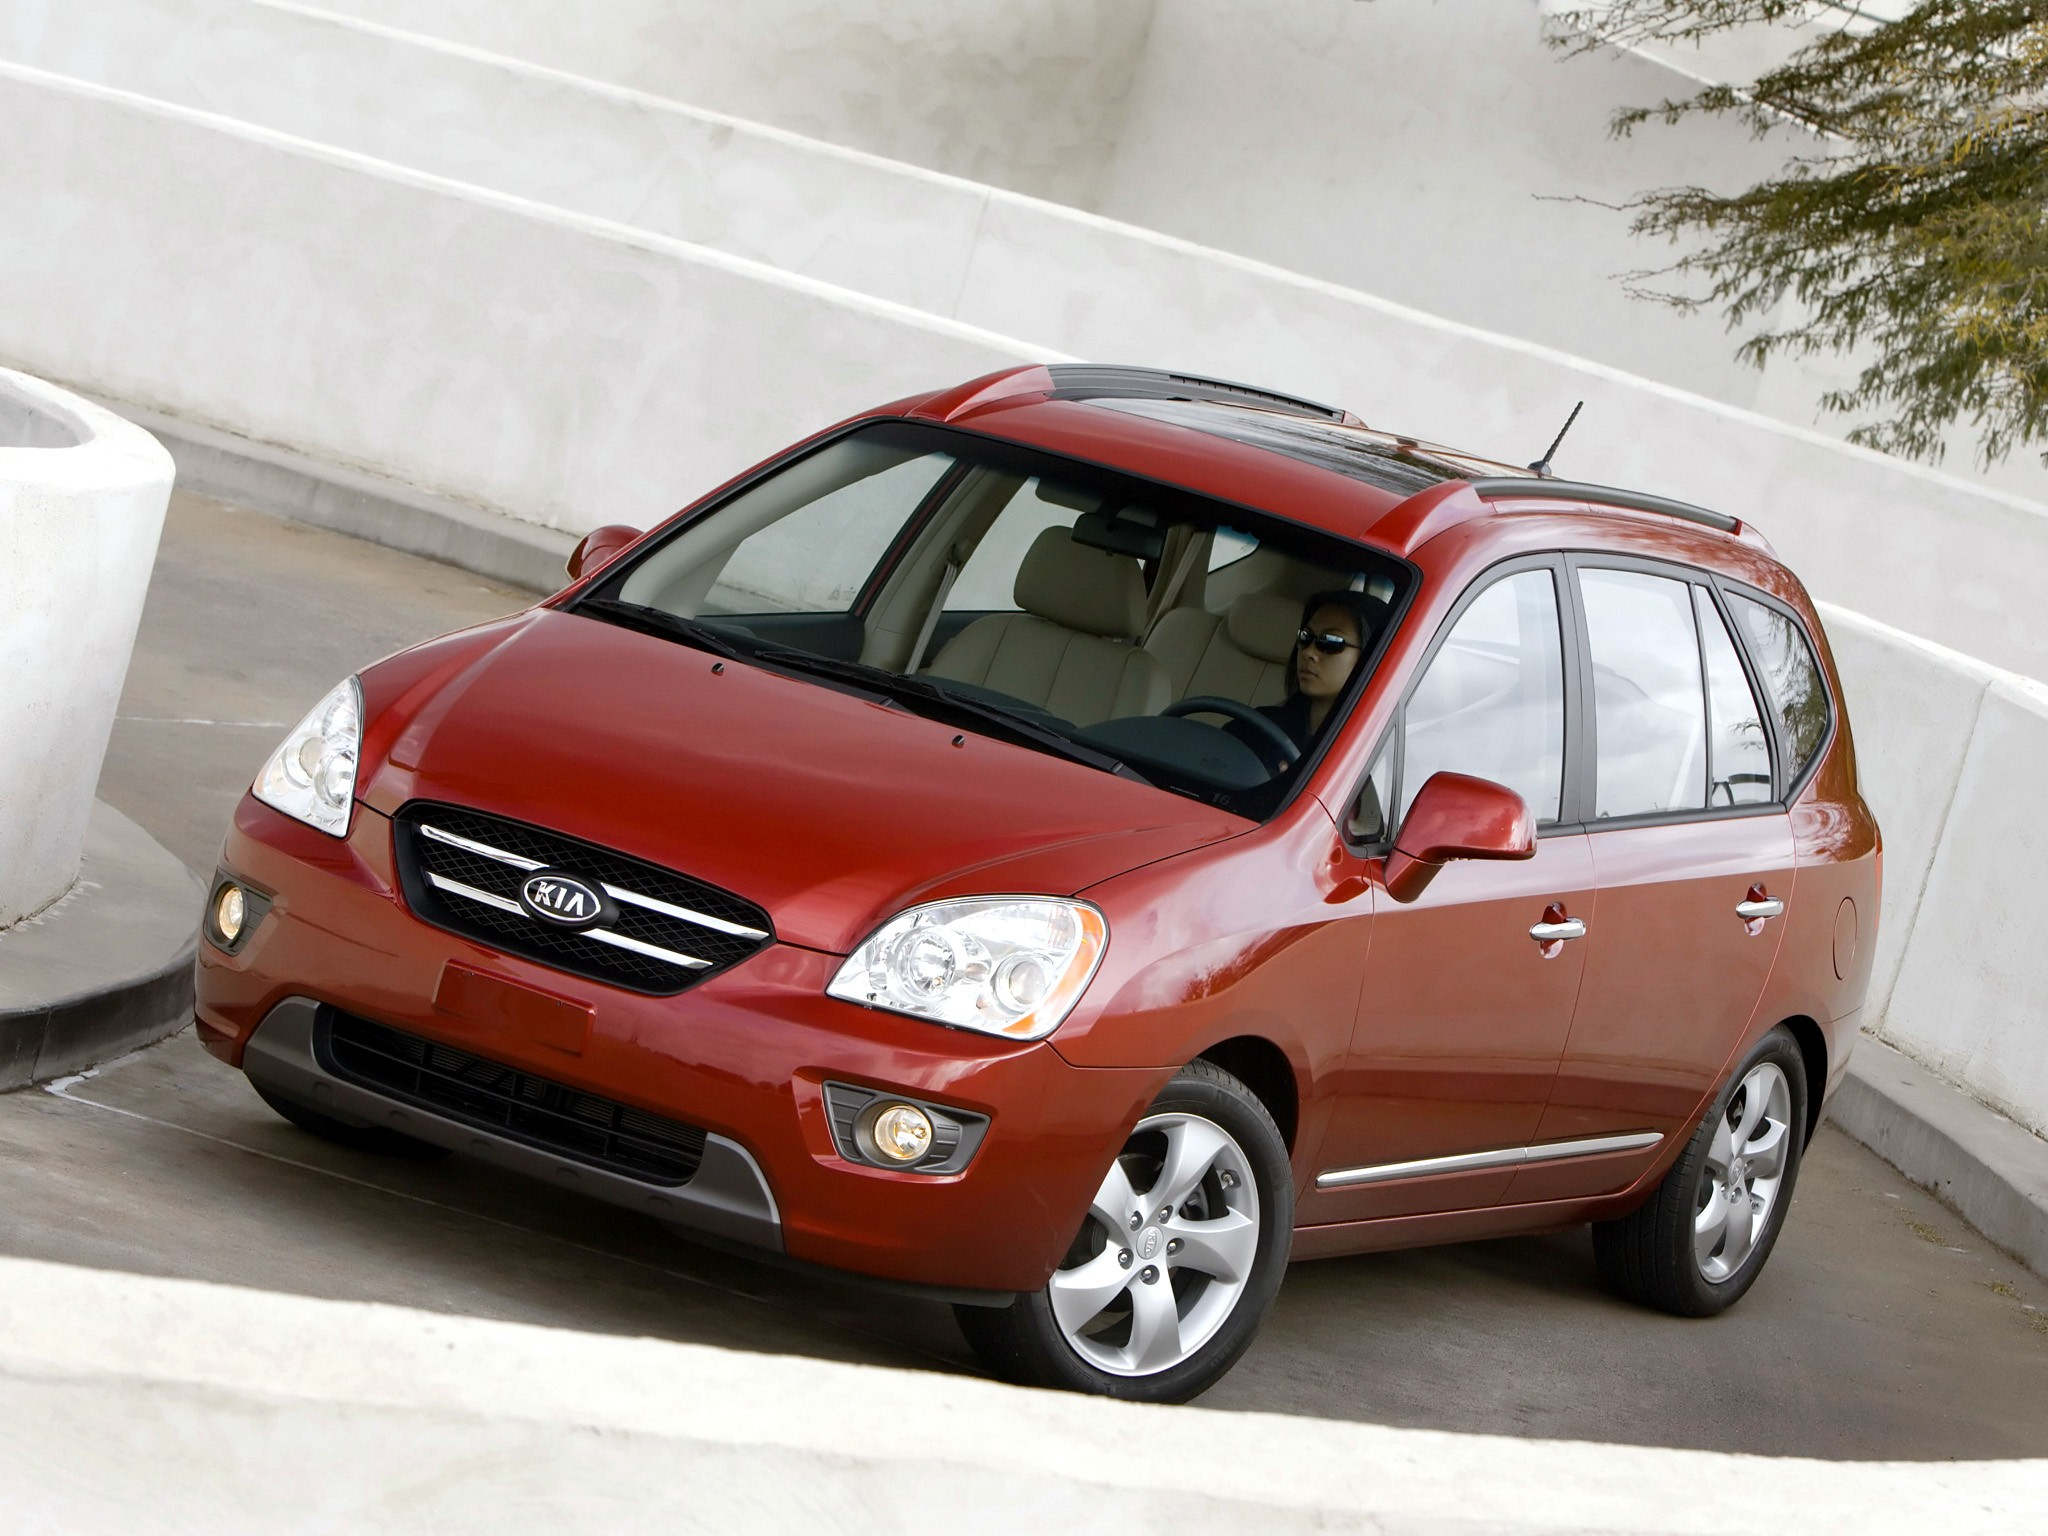 2008 kia rondo photos Funny DARK SOULS 2 Pictures, Videos, and Articles on Dorkly